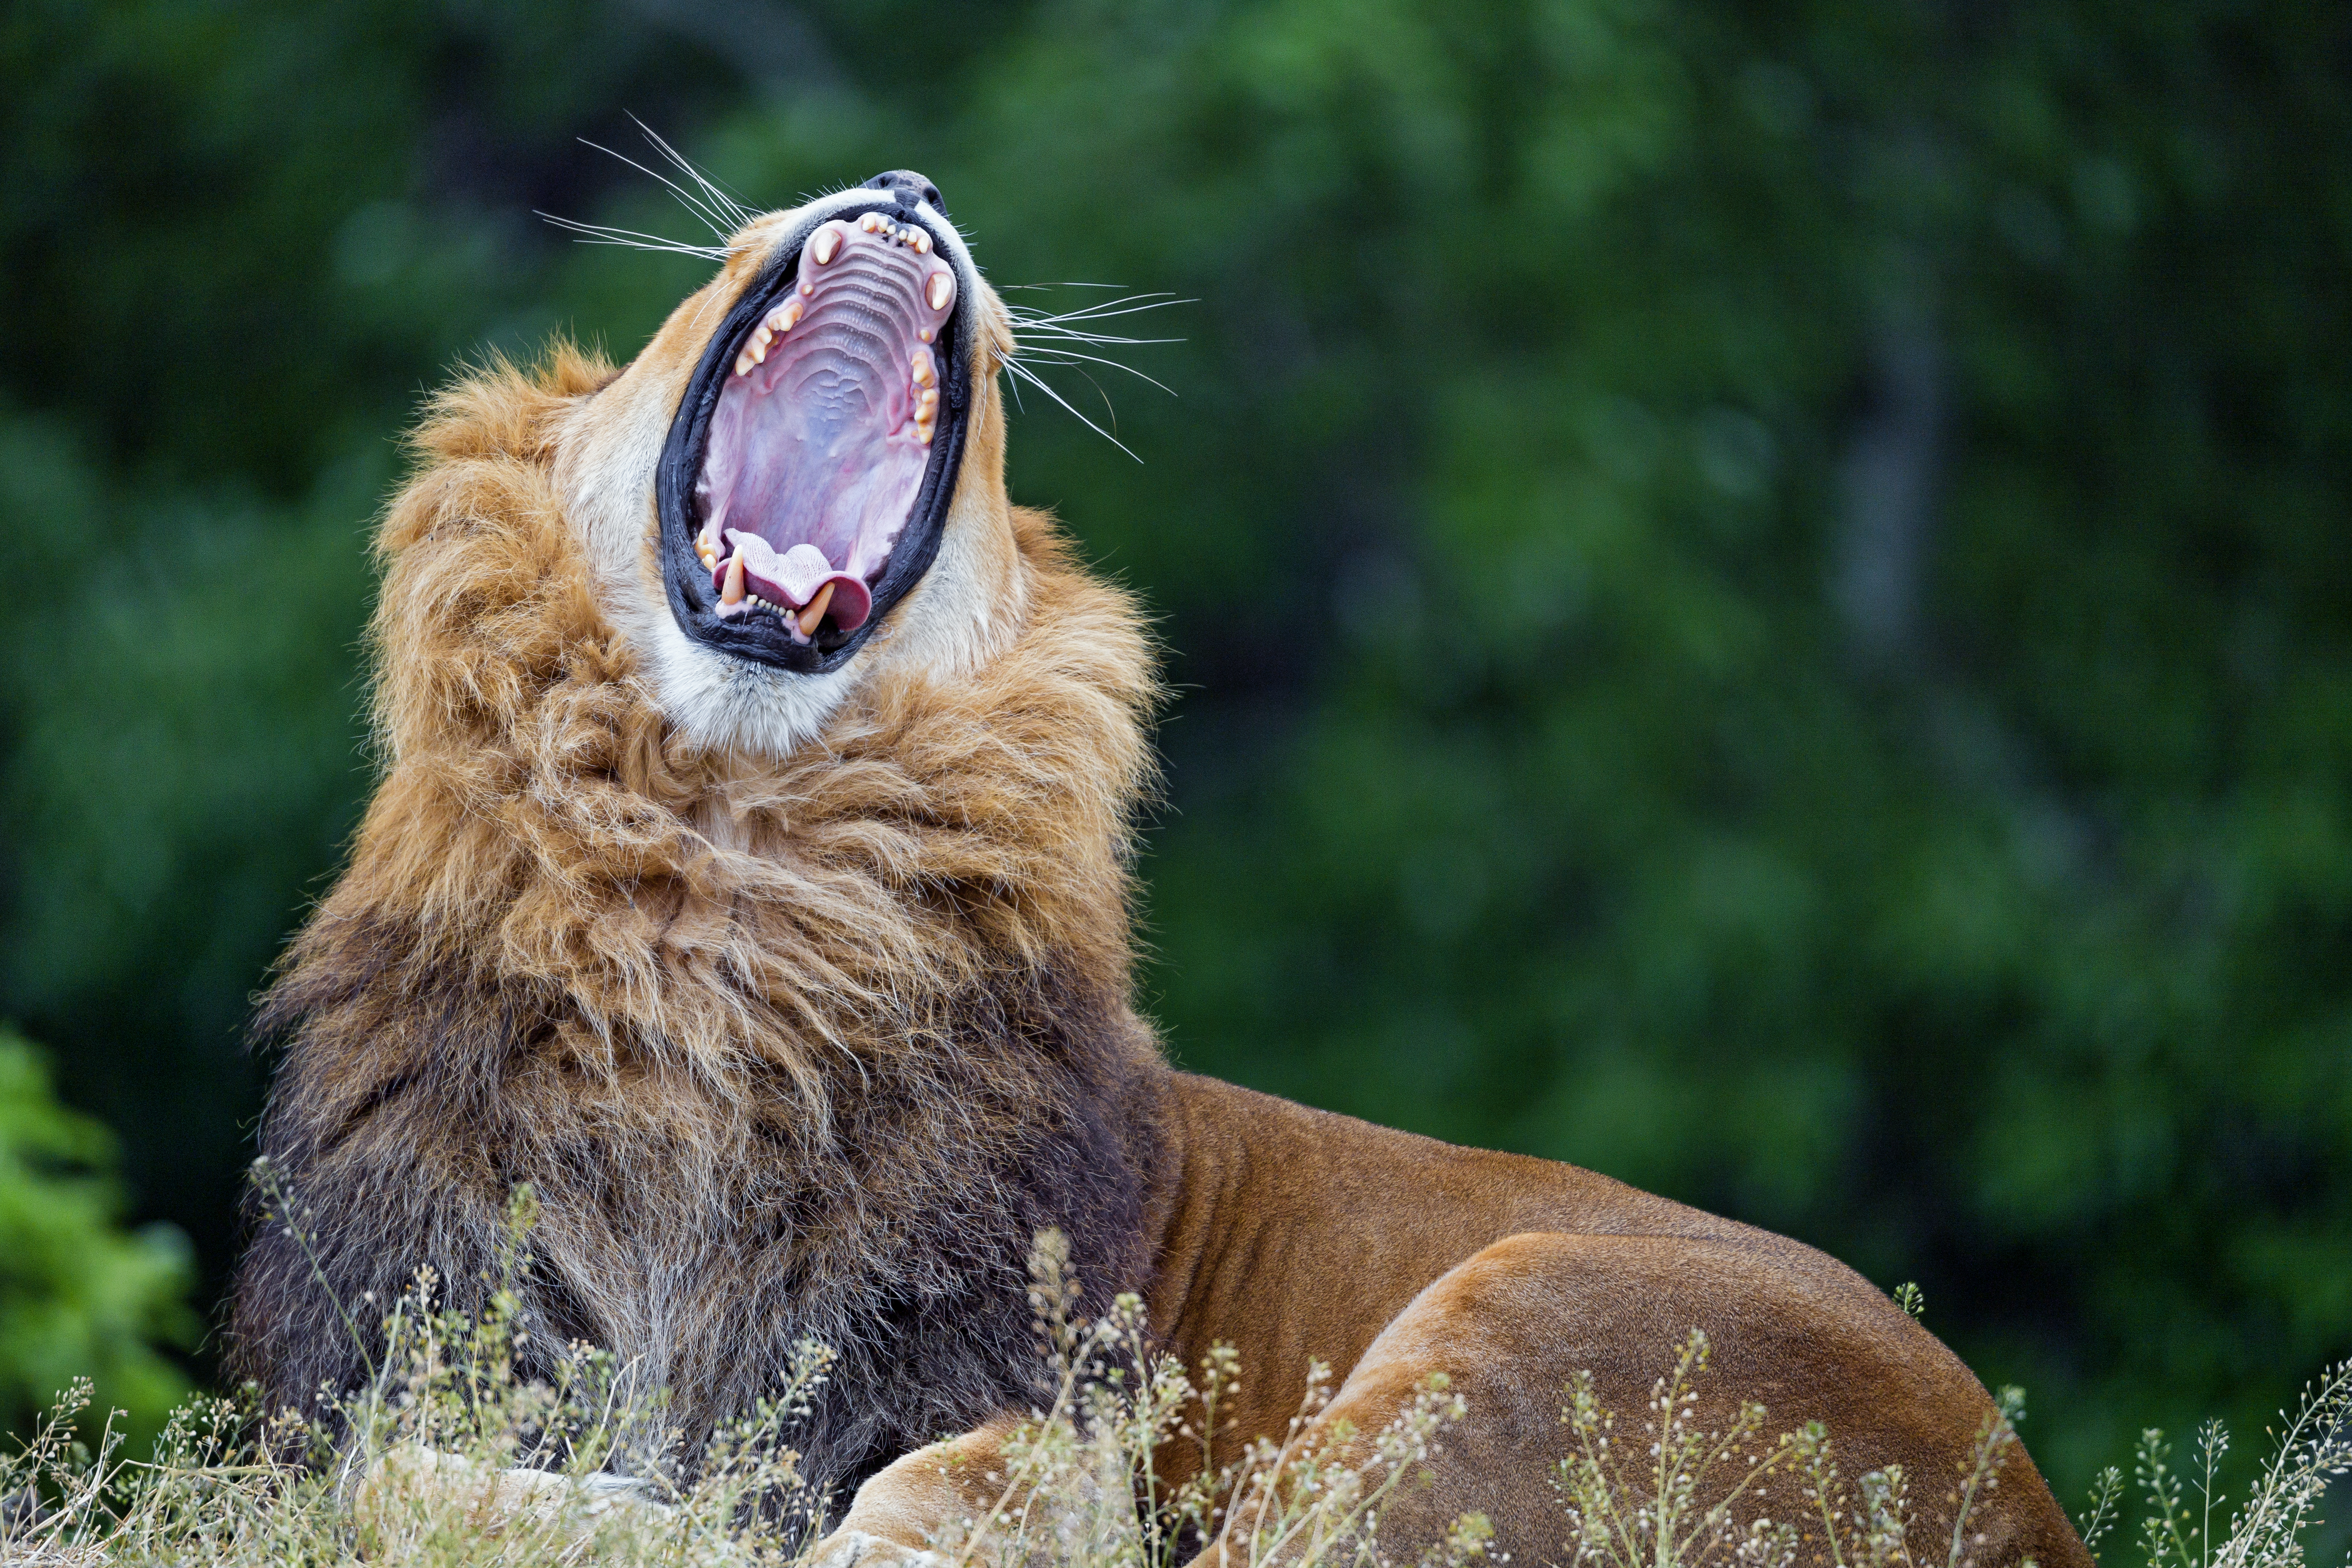 146204 download wallpaper Animals, Lion, To Yawn, Yawn, Predator, Big Cat, Wildlife screensavers and pictures for free